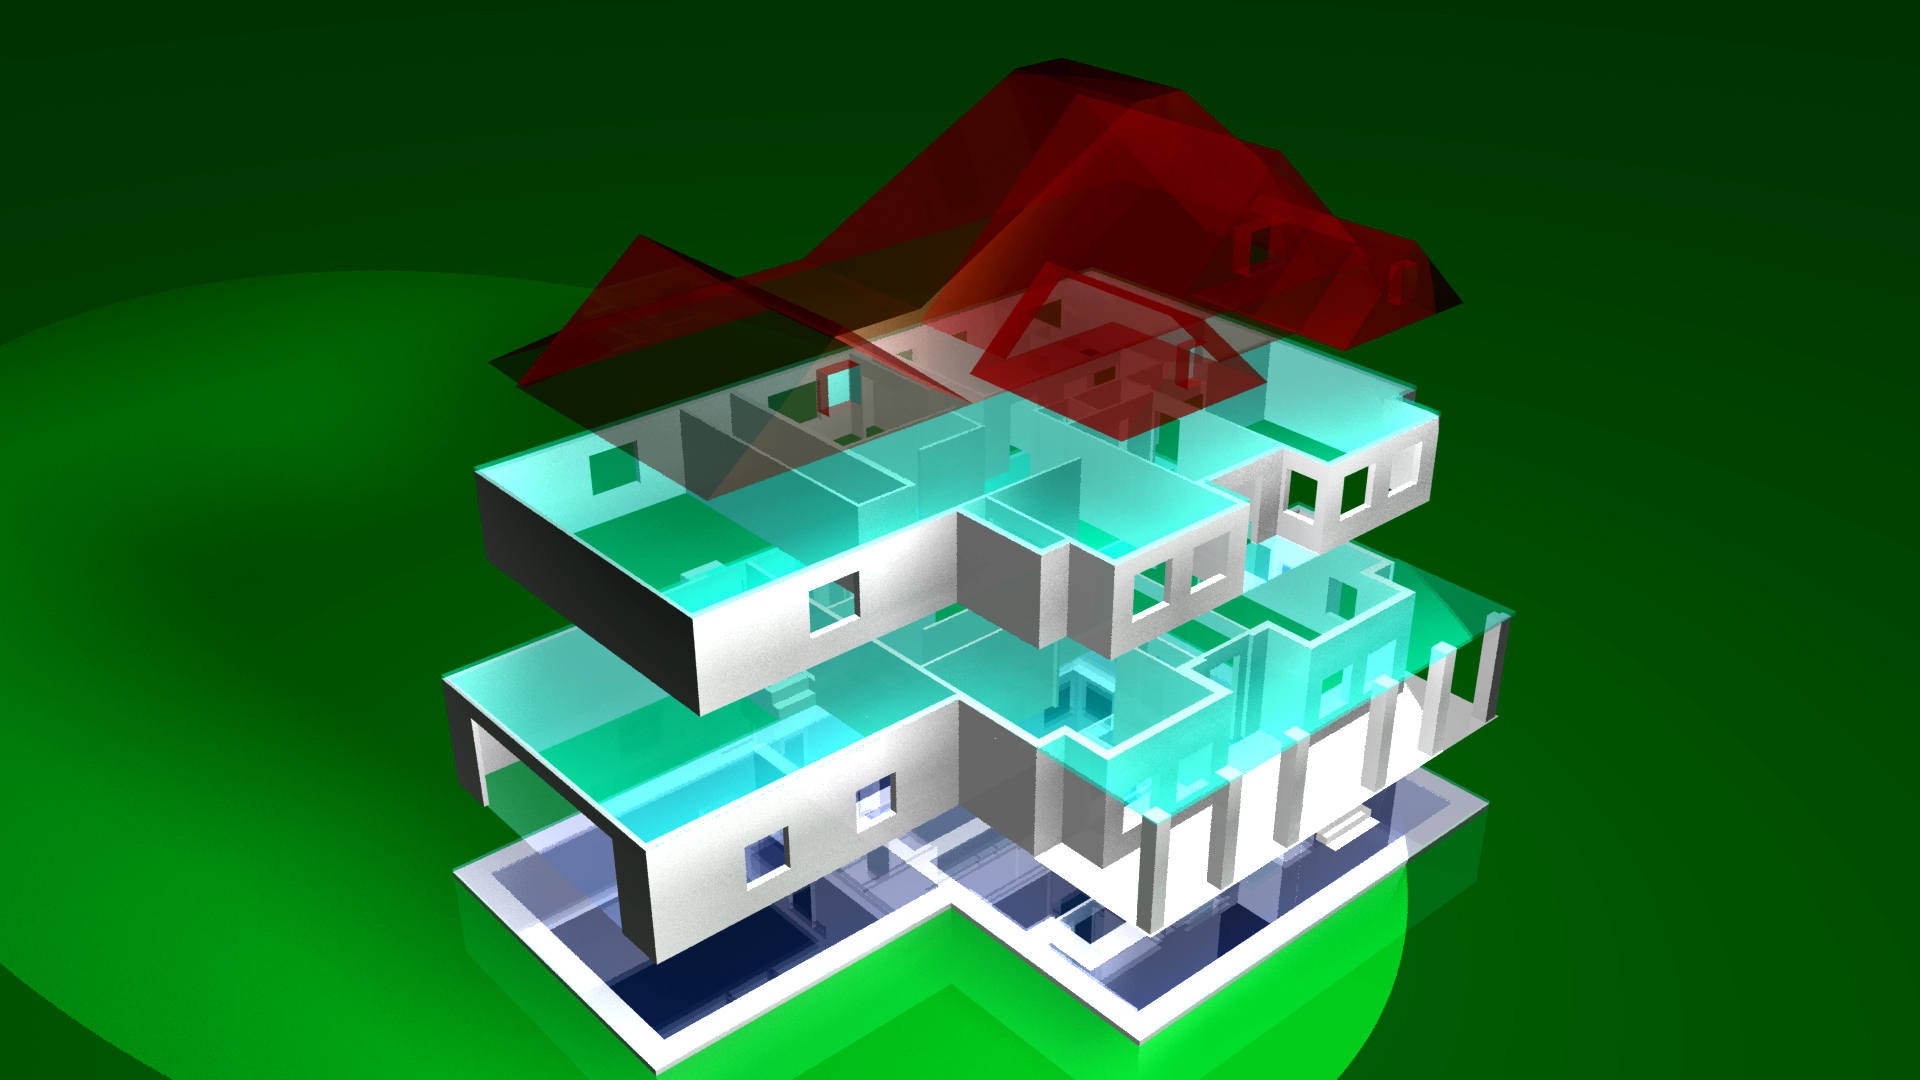 3d House Plans 3d Printed House Models: 3d printer plan